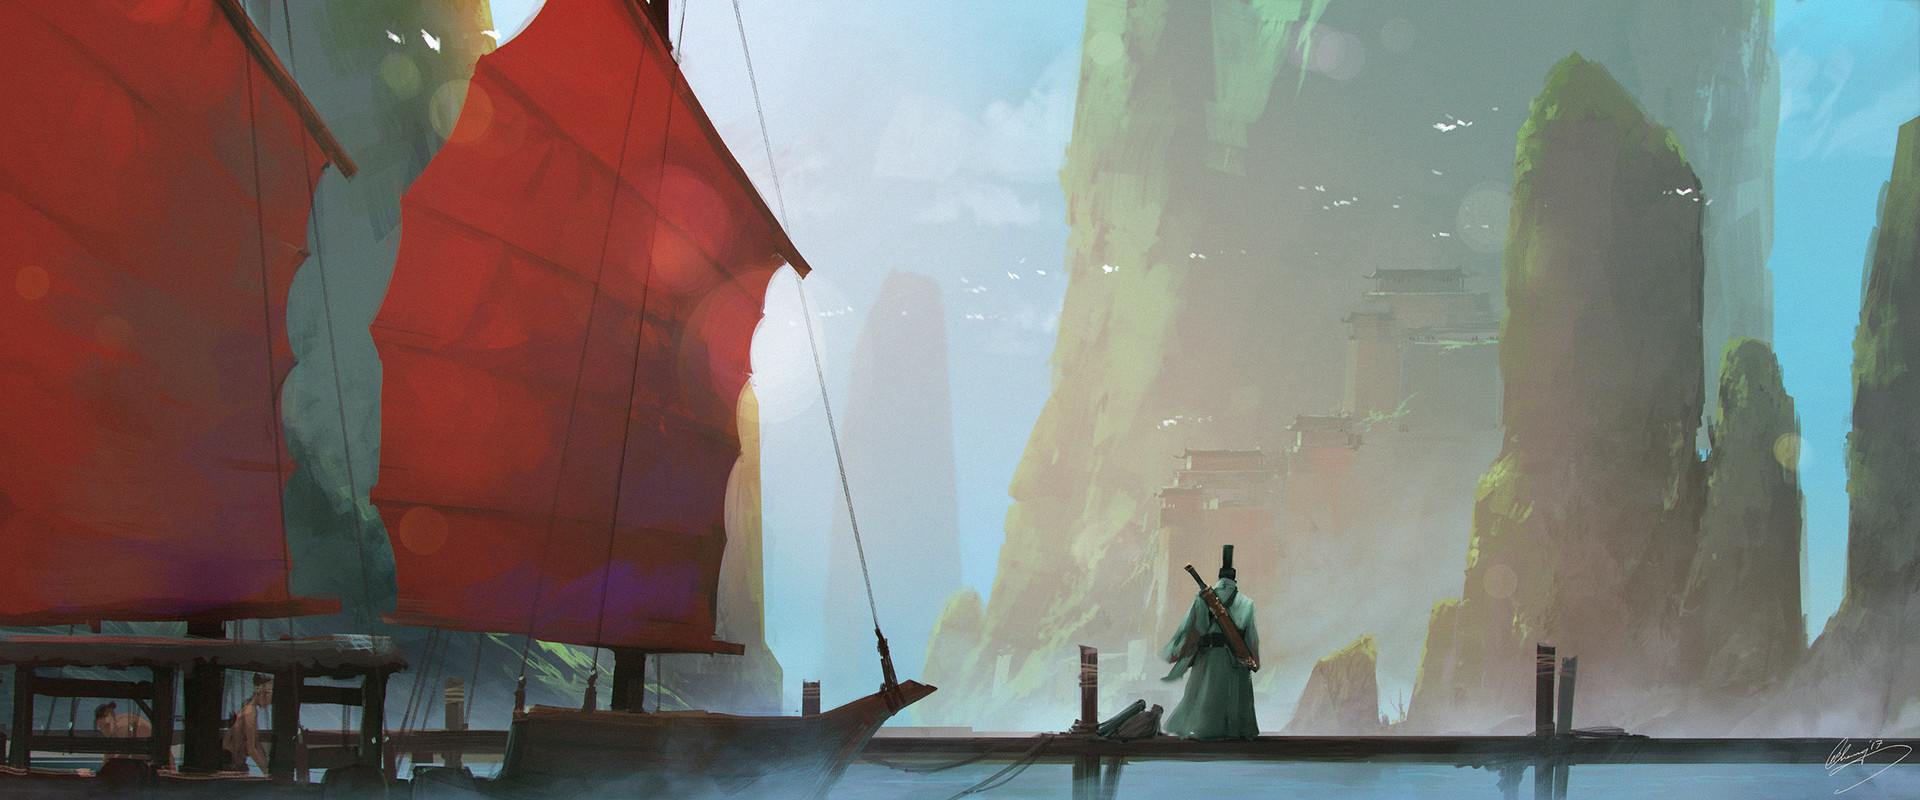 Lap pun cheung ancient civilizations keyframe 1 arrival by junk ship online